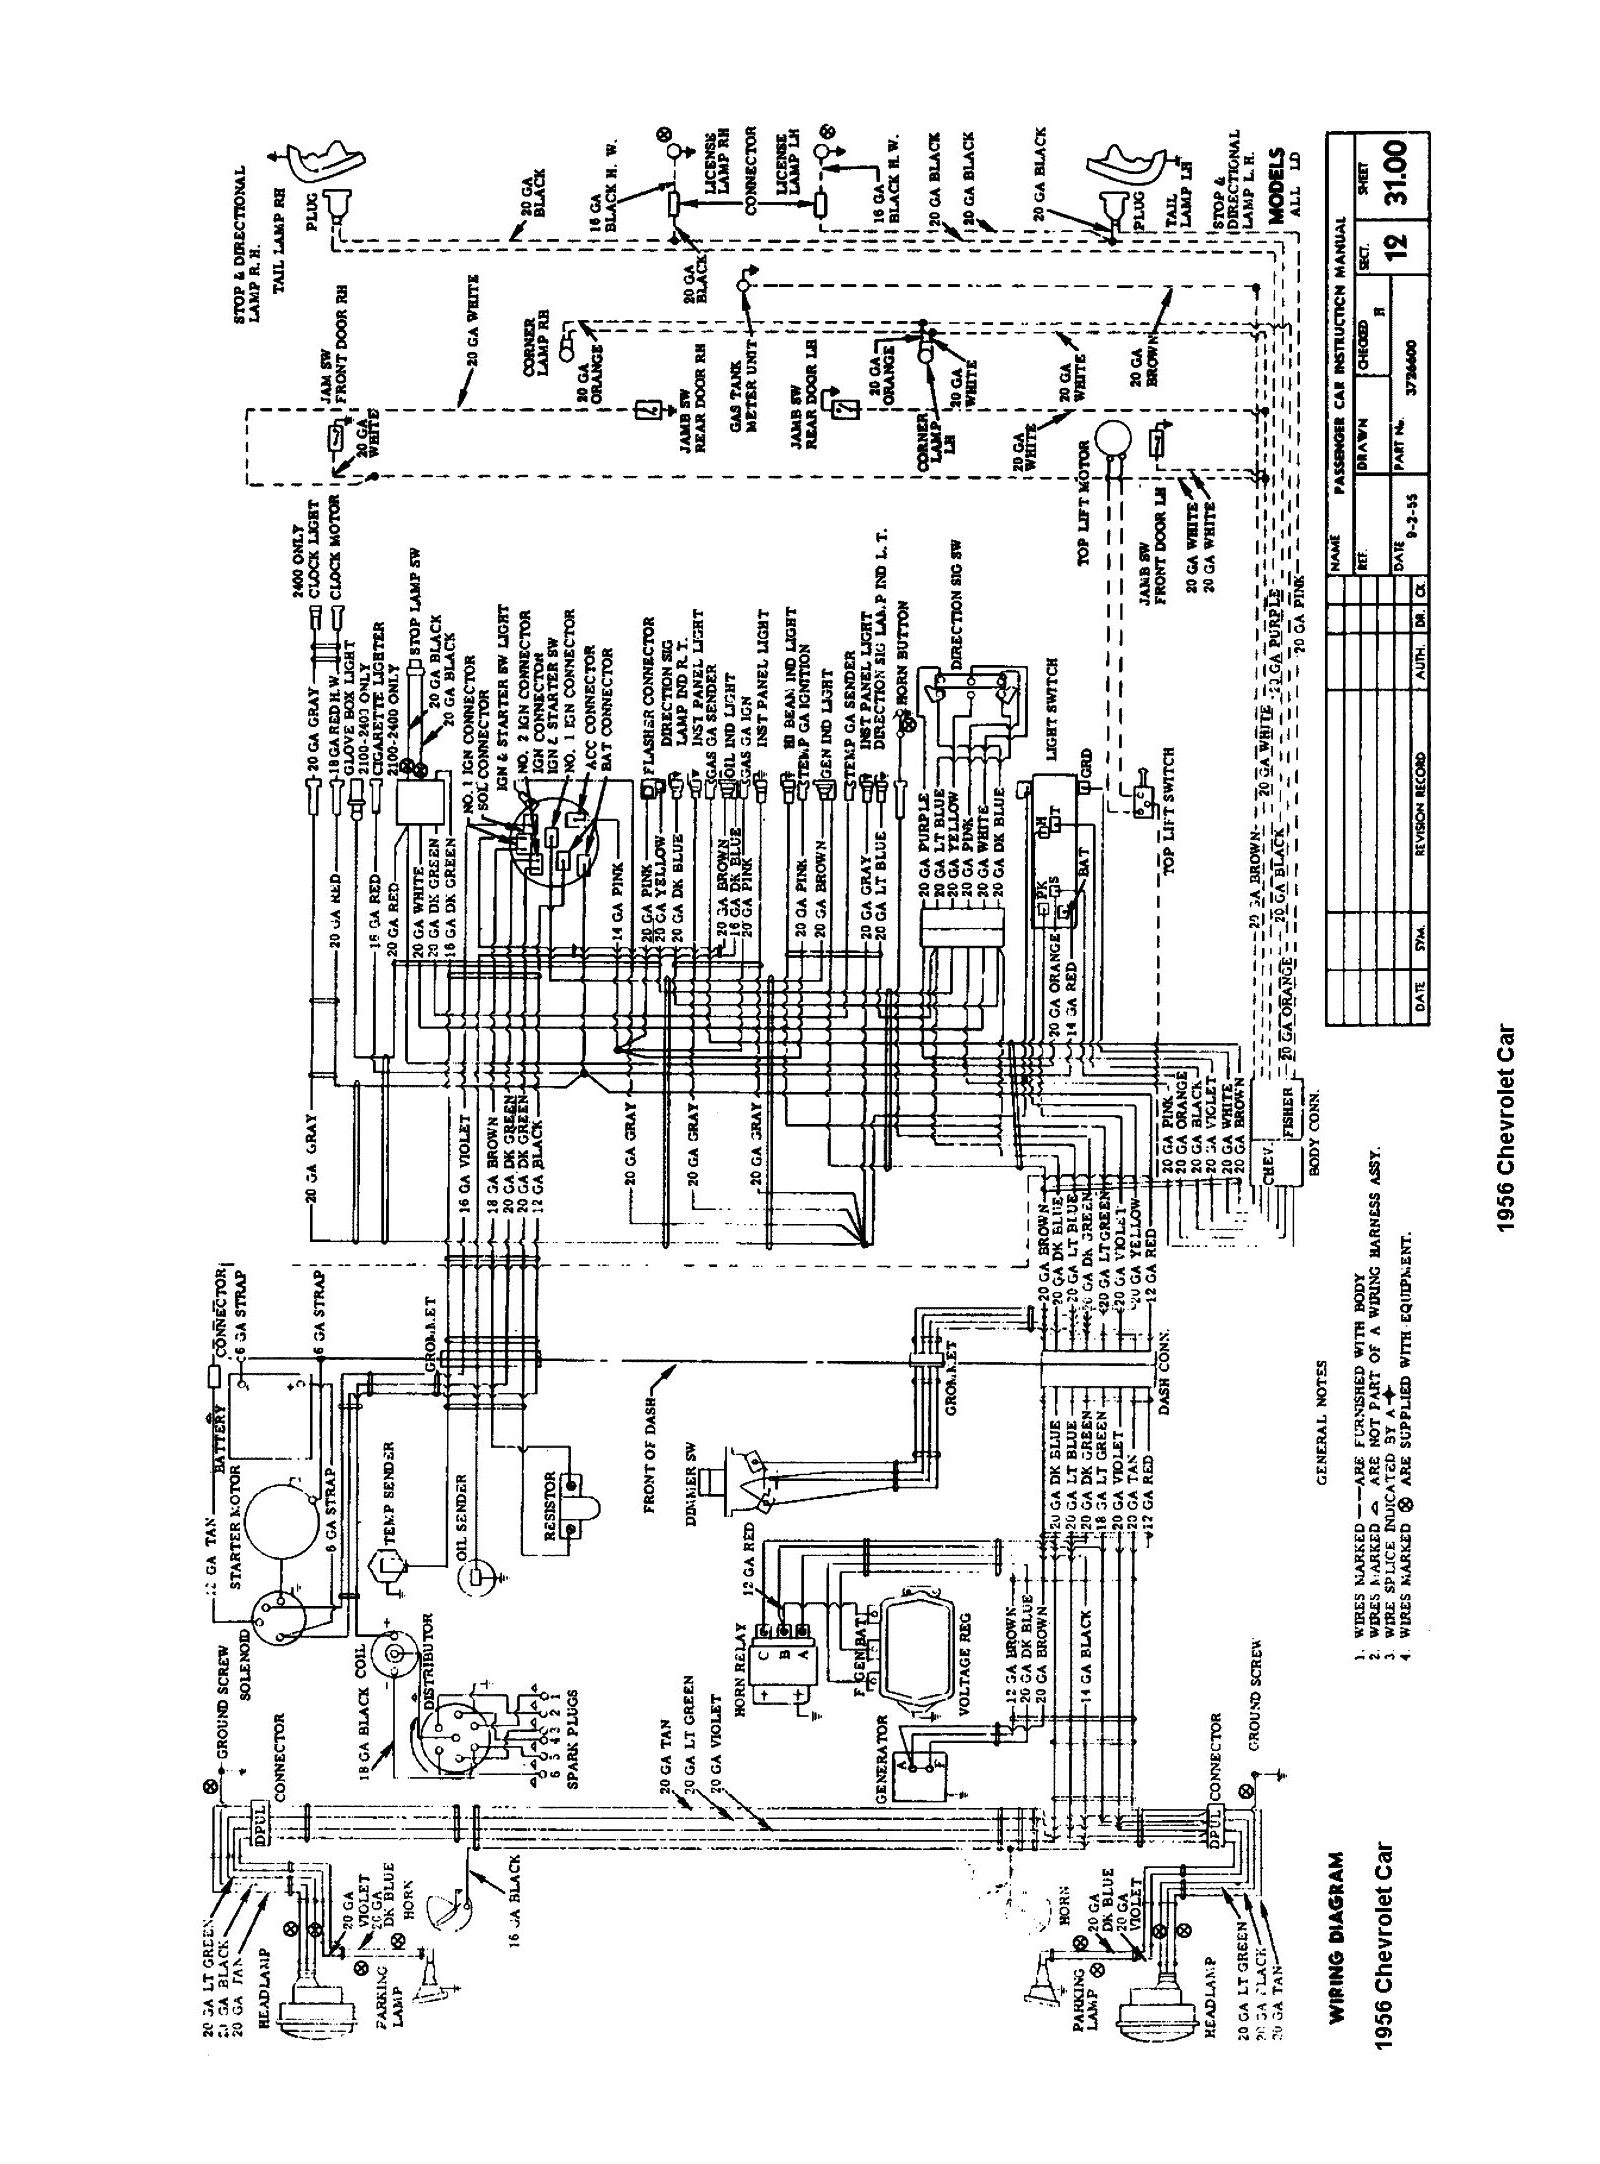 wiring diagram for 1955 chevy bel air ireleast info 1956 chevy pickup wiring diagram 1956 wiring diagrams wiring diagram